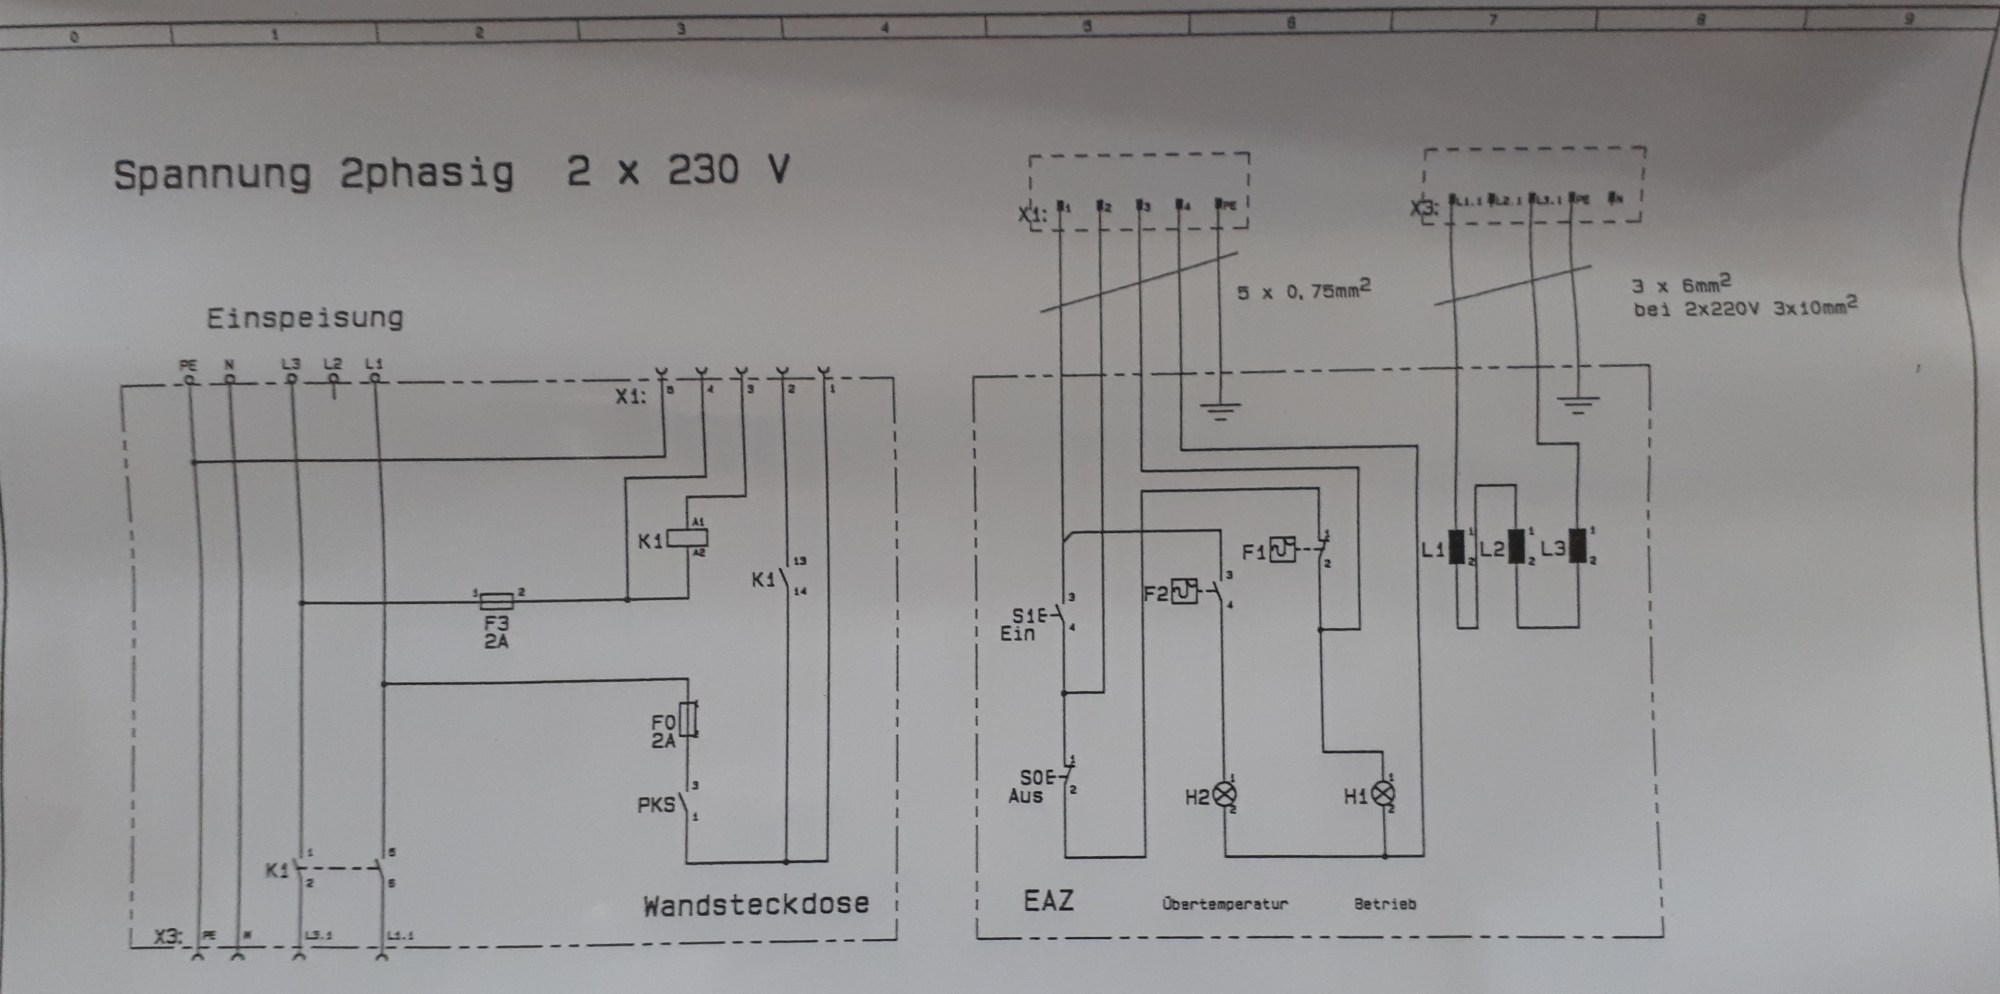 hight resolution of 3 phase 380 v to 3 phase 230 v electrical engineering stack exchange phase circuit may be 3wire network 3wire 4wire delta or 4wire